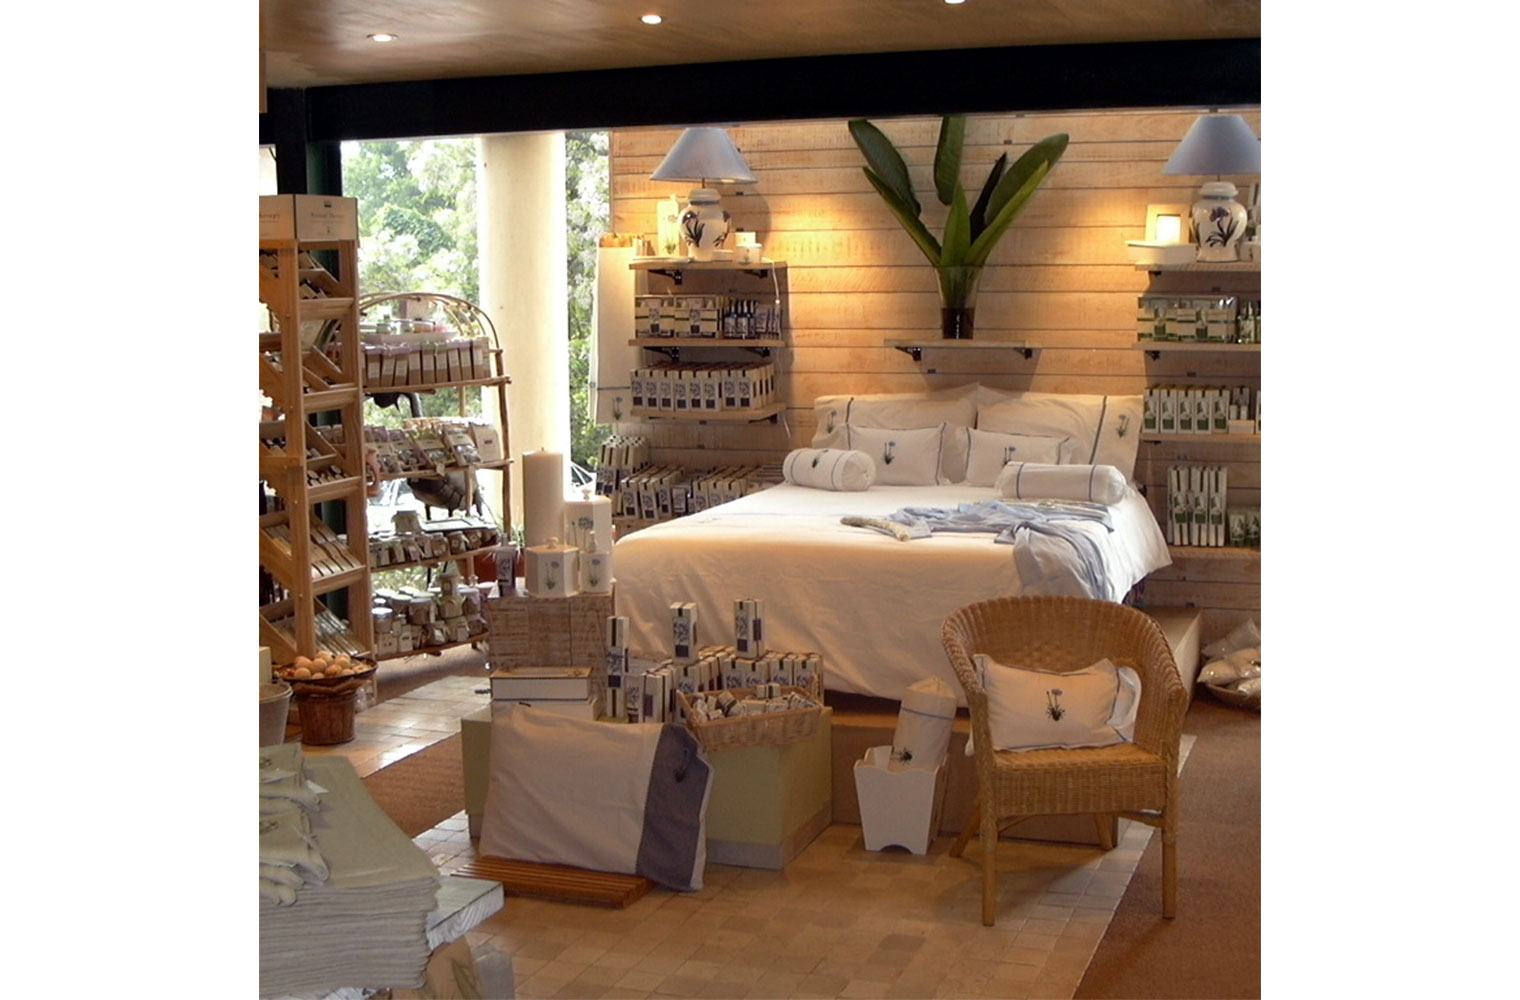 Kirstenbosch Shop-bath & body area